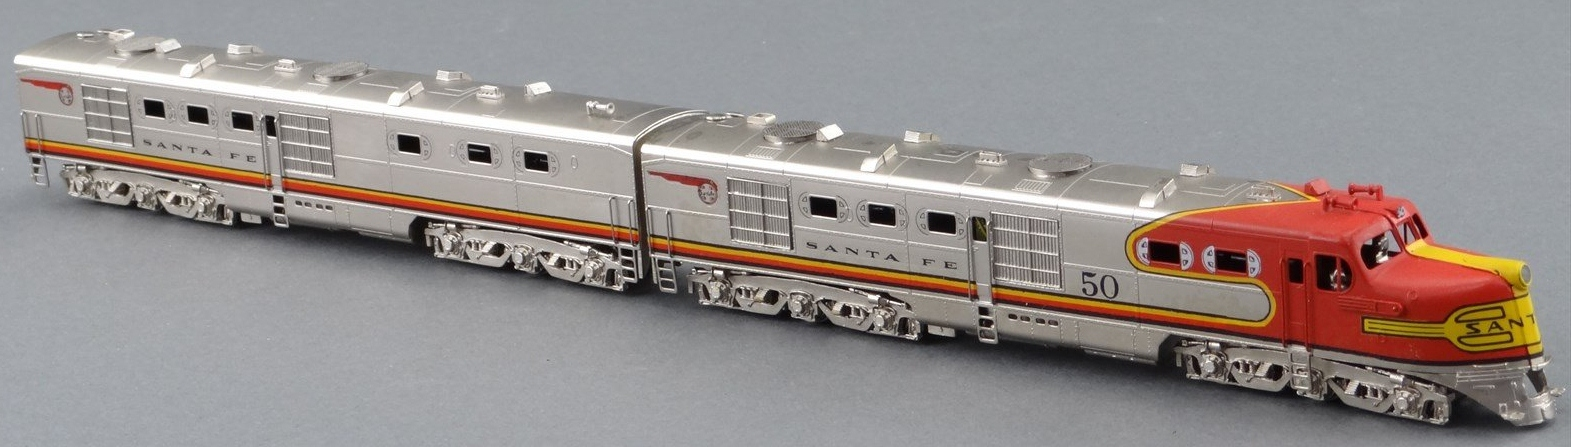 N Scale - Hallmark Models - NS0002 - Locomotive, Diesel, Alco DL-109 - Santa Fe - 50